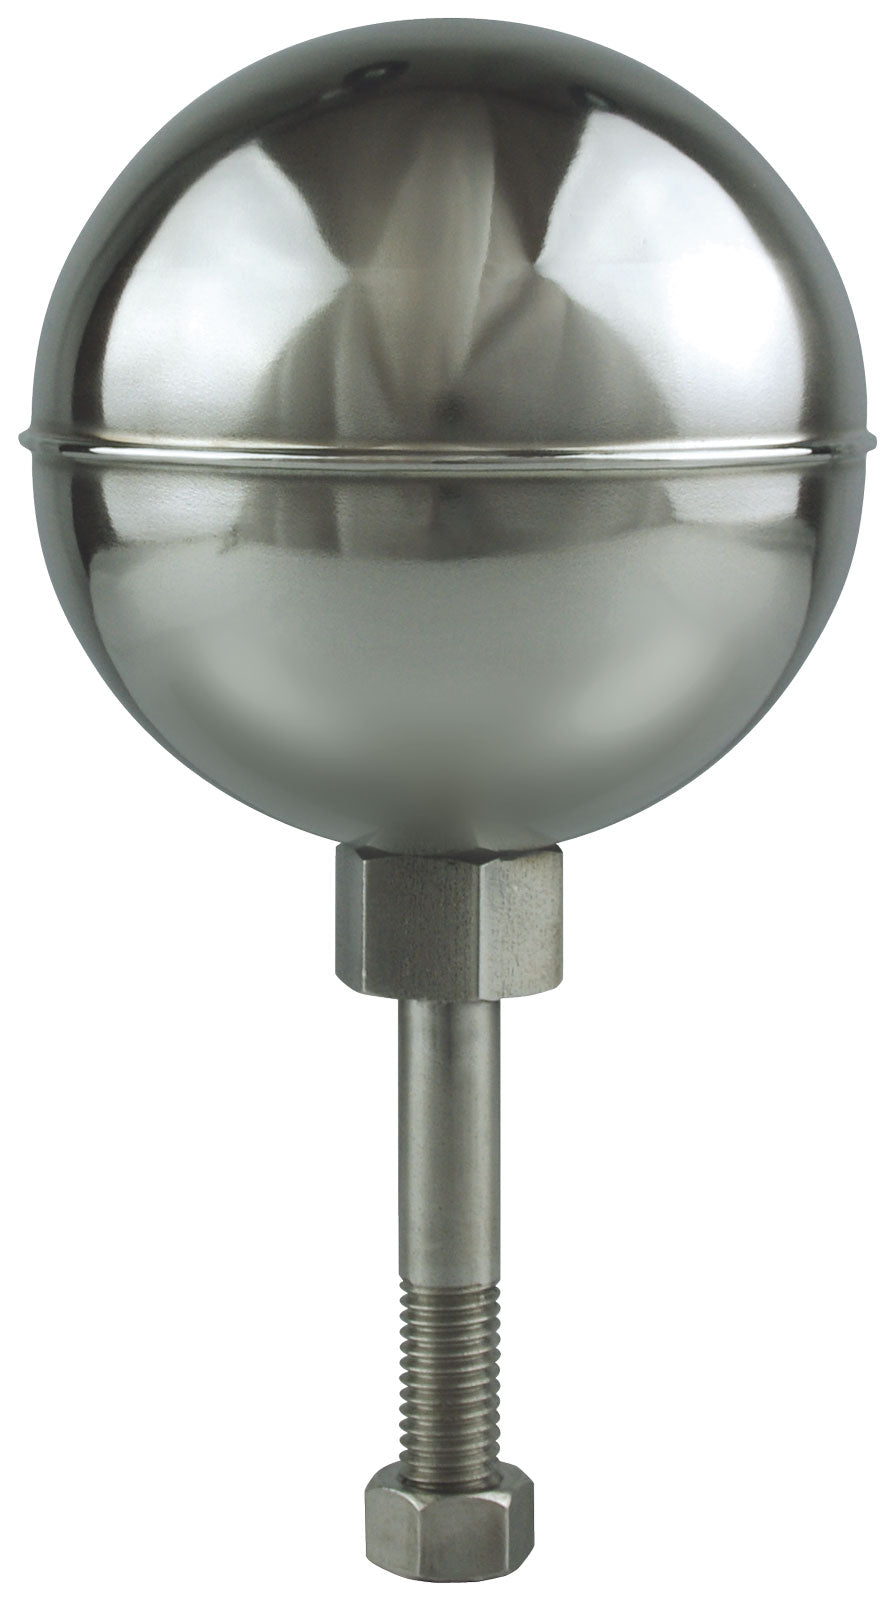 Stainless Steel Ball Ornament - Mirror Finish